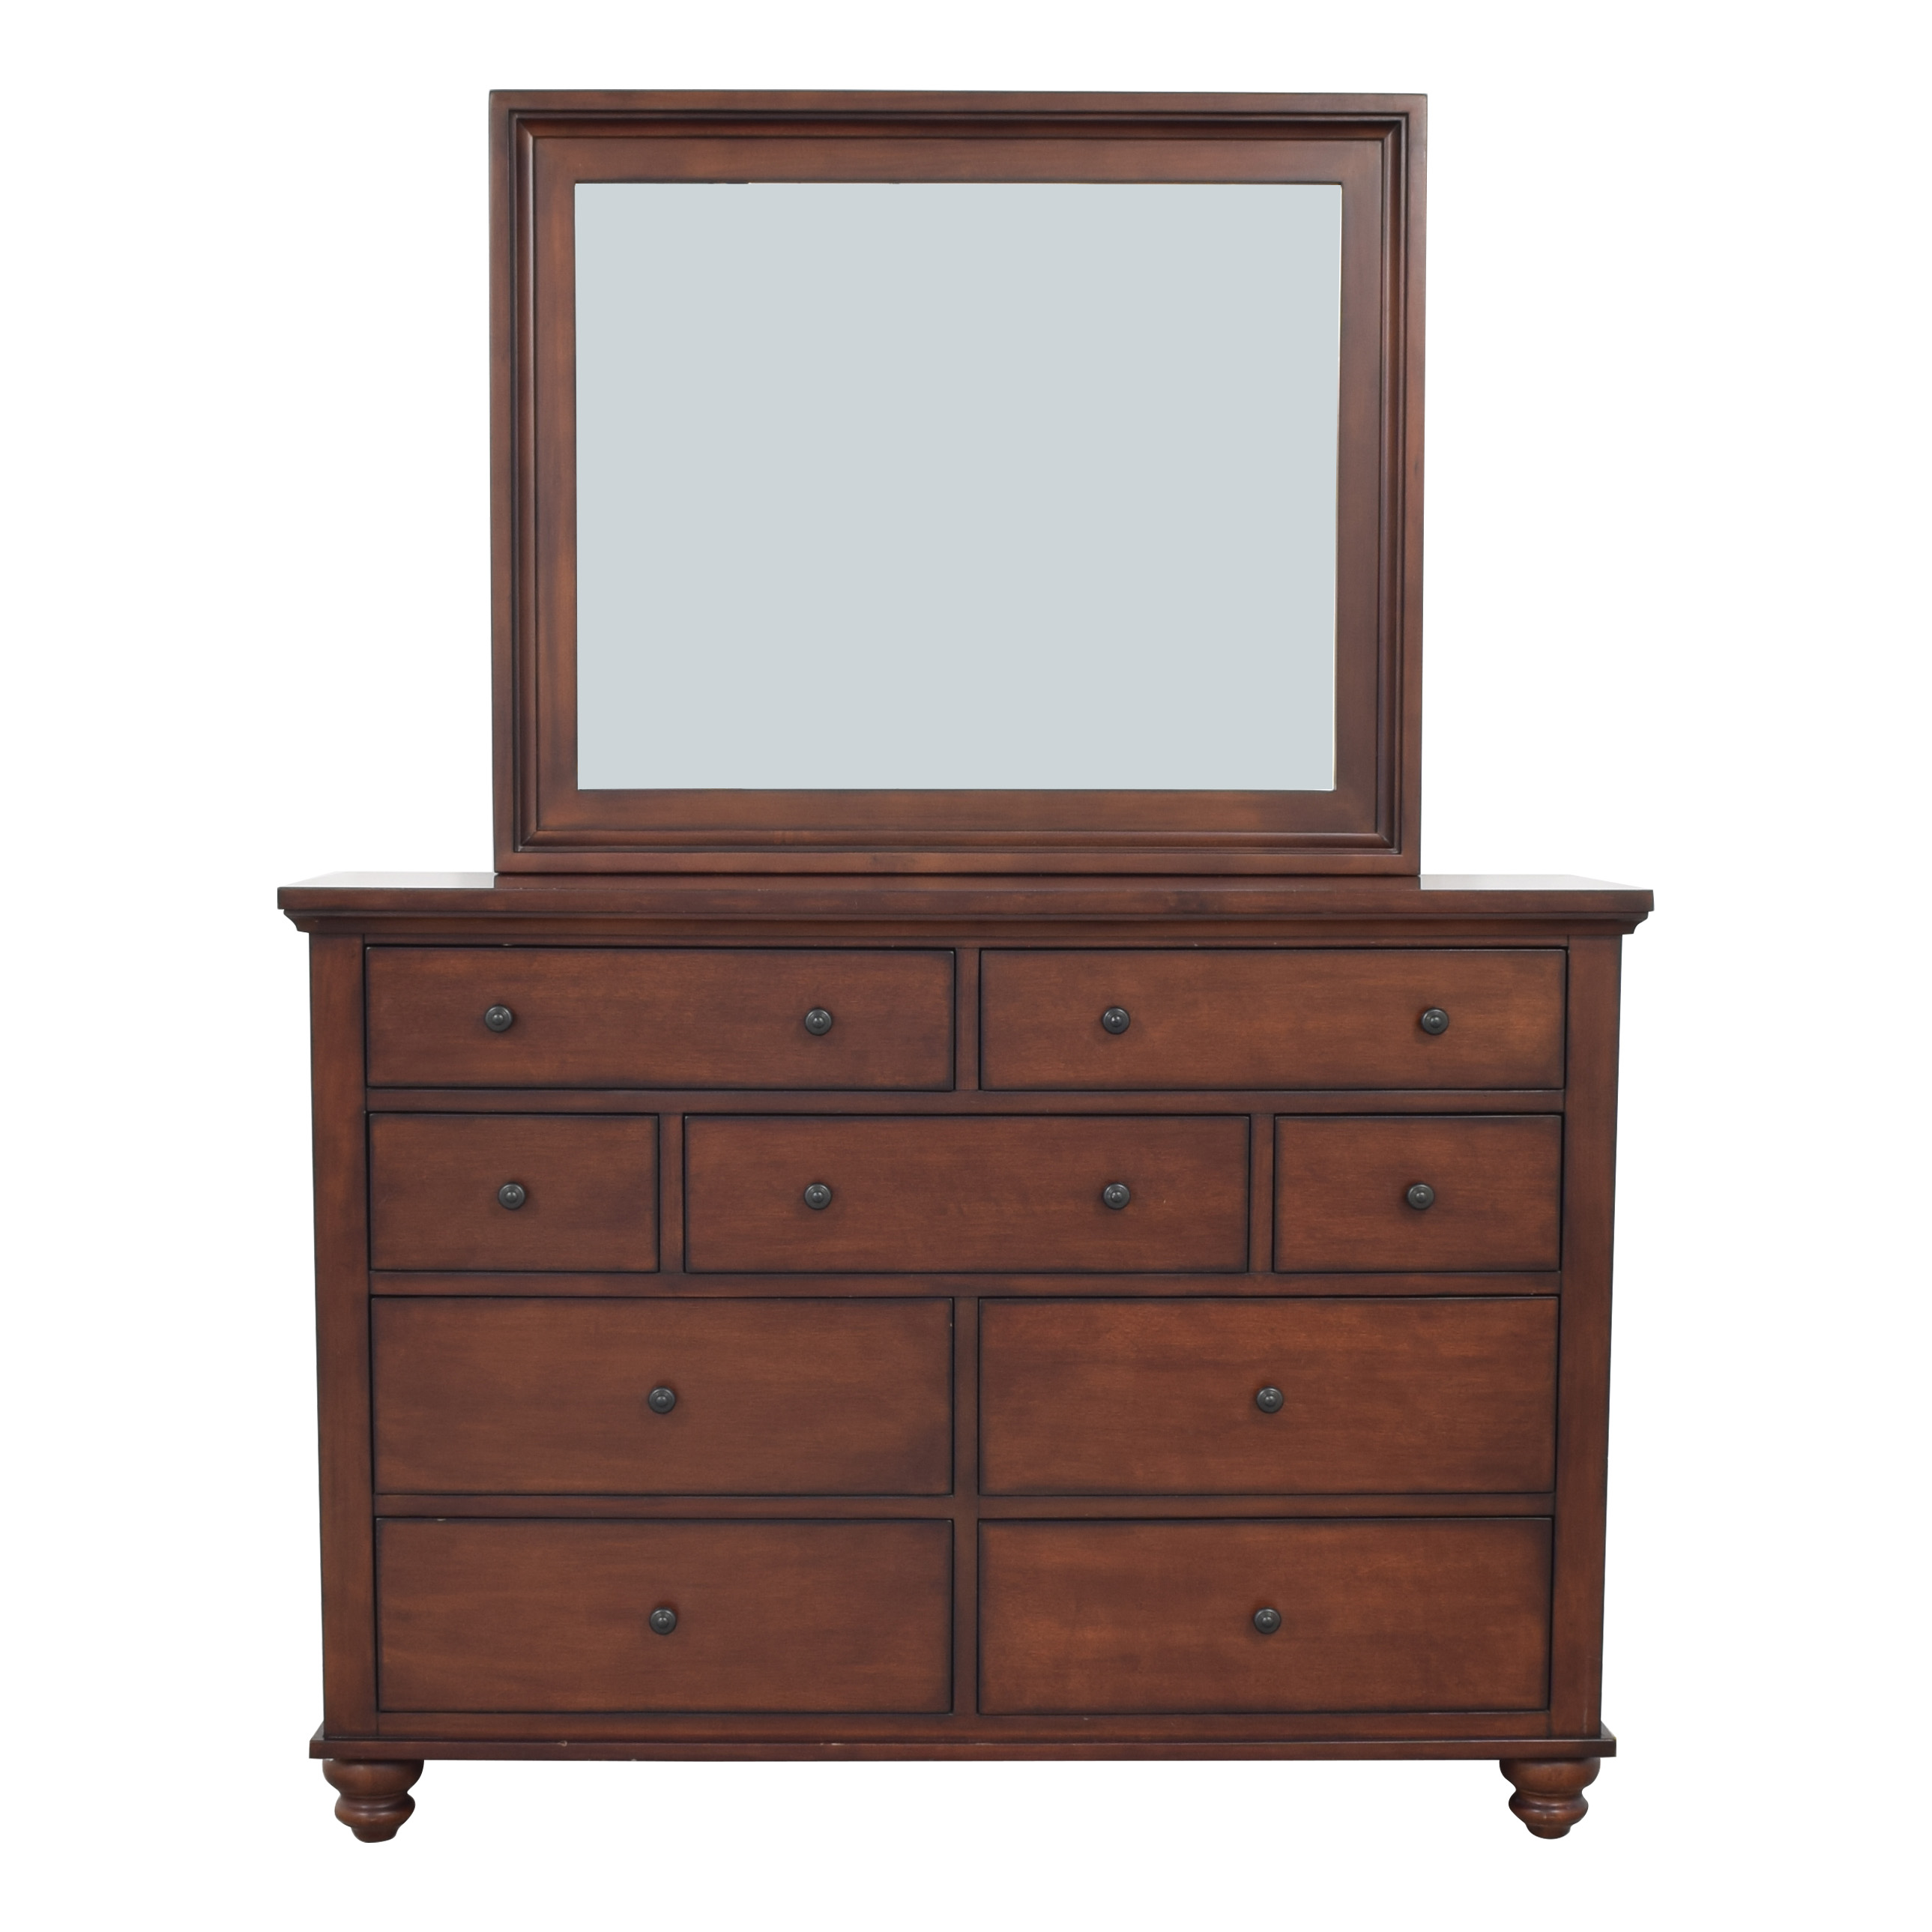 aspenhome Aspen Home Cambridge Dresser with Mirror for sale